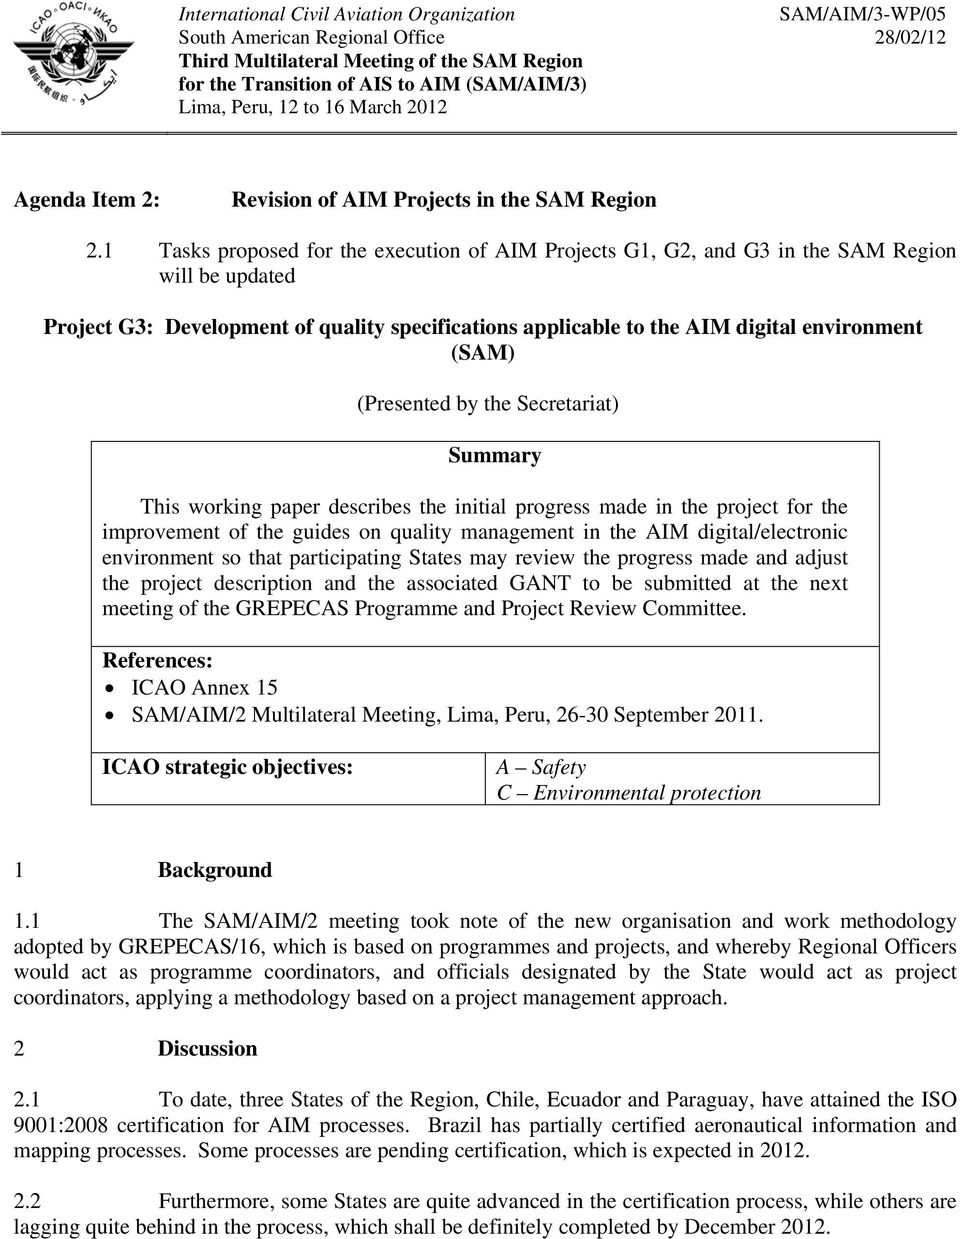 1 Tasks proposed for the execution of AIM Projects G1, G2, and G3 in the SAM Region will be updated Project G3: Development of quality specifications applicable to the AIM digital environment (SAM)